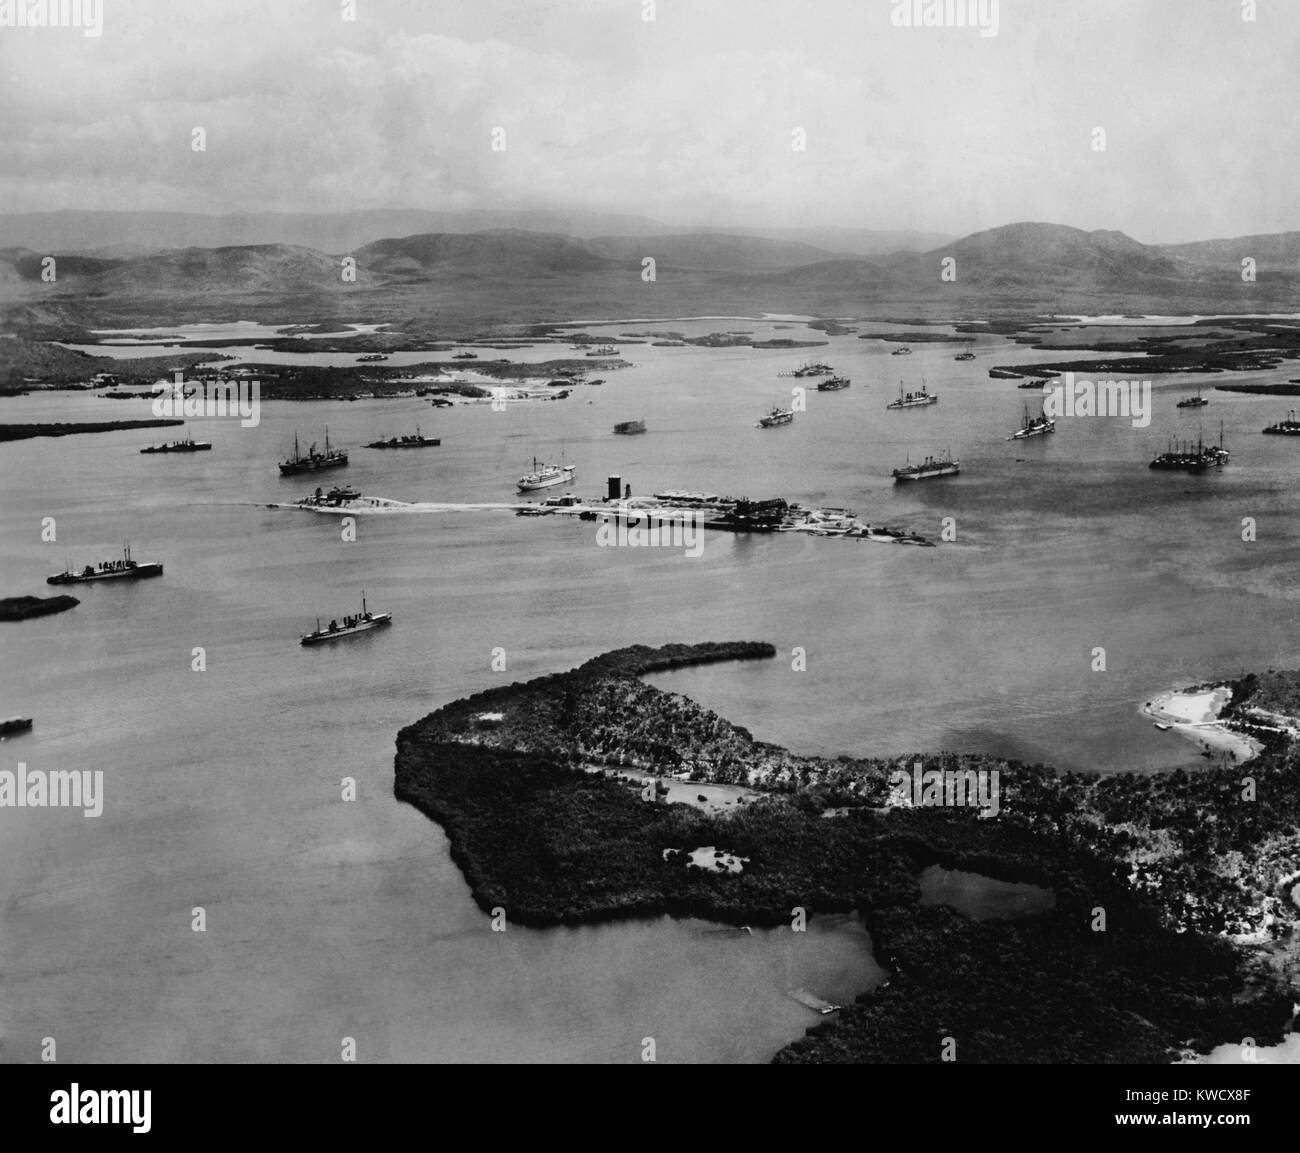 Aerial view of Guantanamo Bay, US Naval base in Cuba, 1927. Aerial view of 29 destroyers, 14 auxiliaries, and two - Stock Image